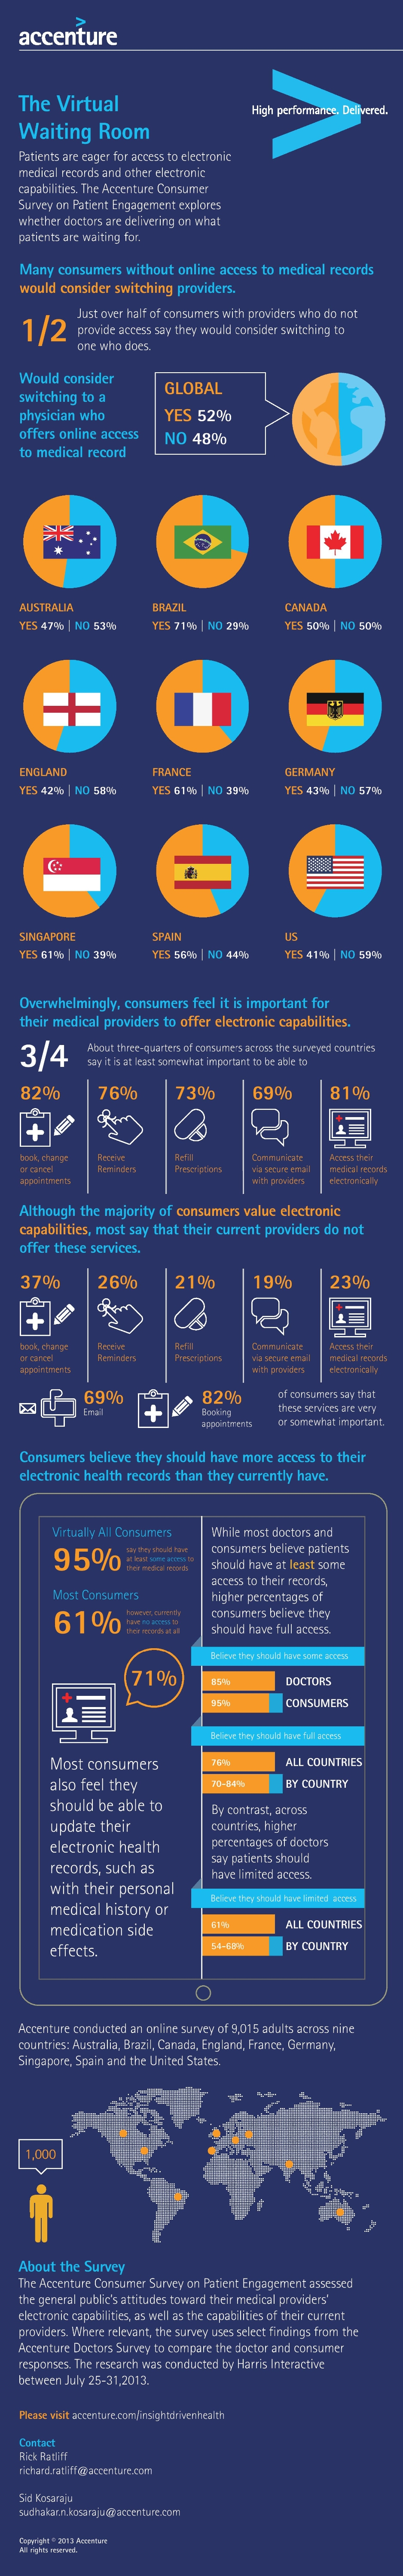 Patients Want Access to Their EMRs